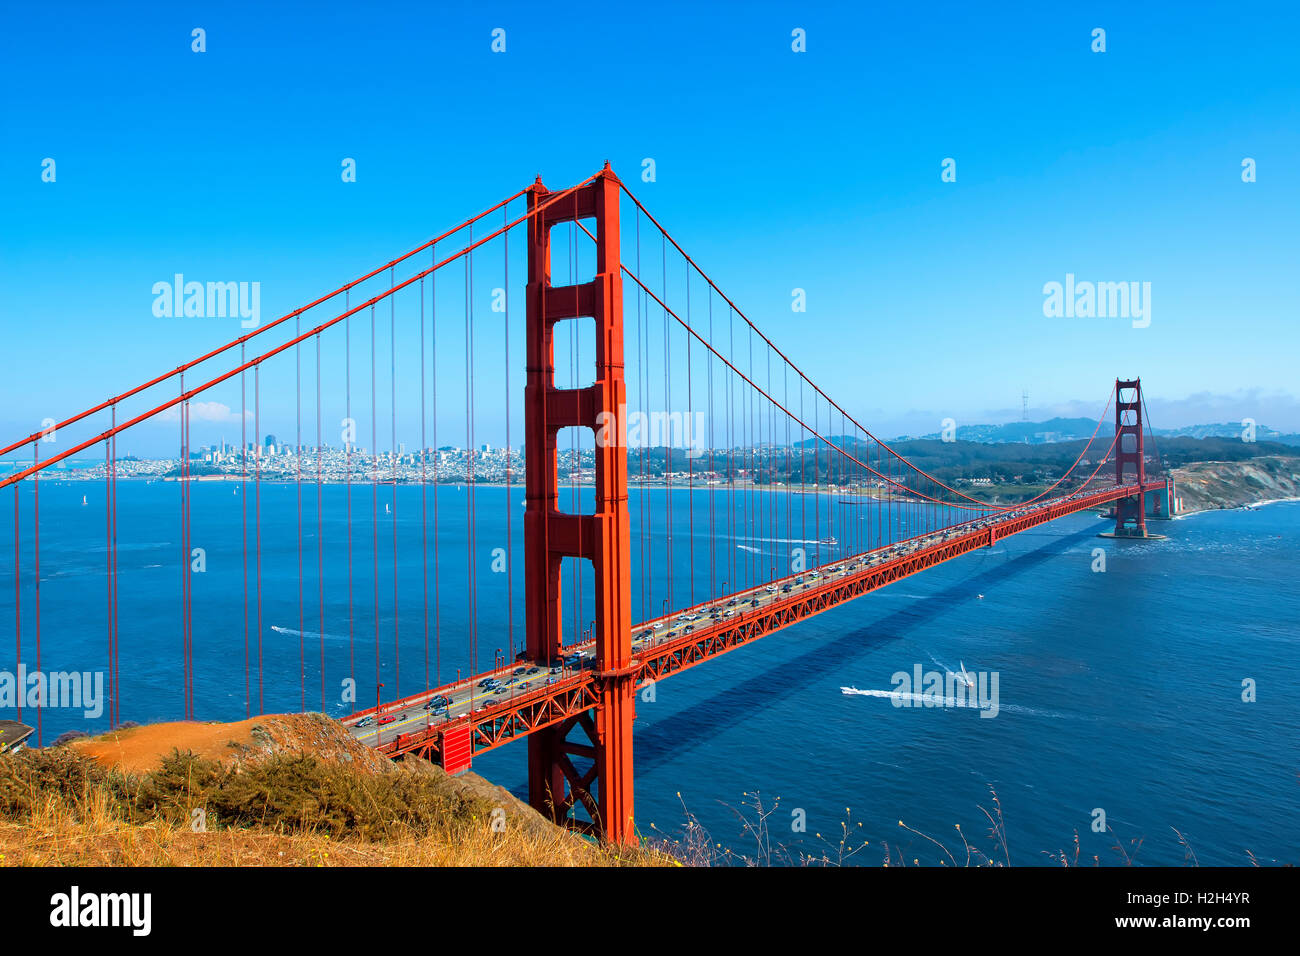 golden gate bridge stockfotos golden gate bridge bilder. Black Bedroom Furniture Sets. Home Design Ideas